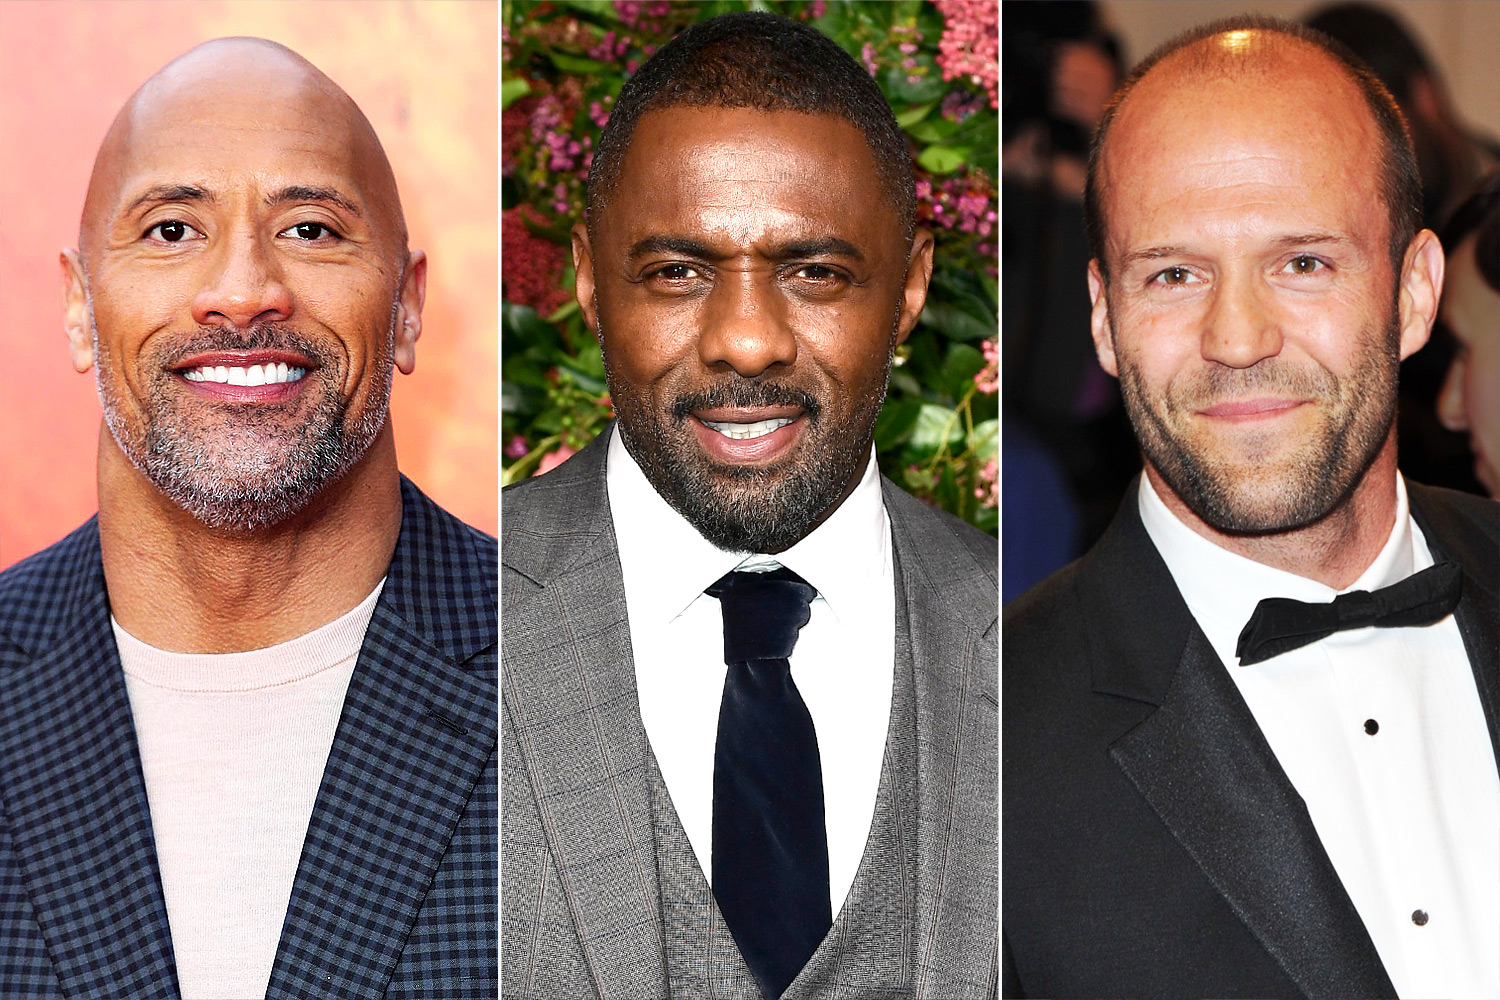 Dwayne Johnson, Idris Elba and Jason Statham